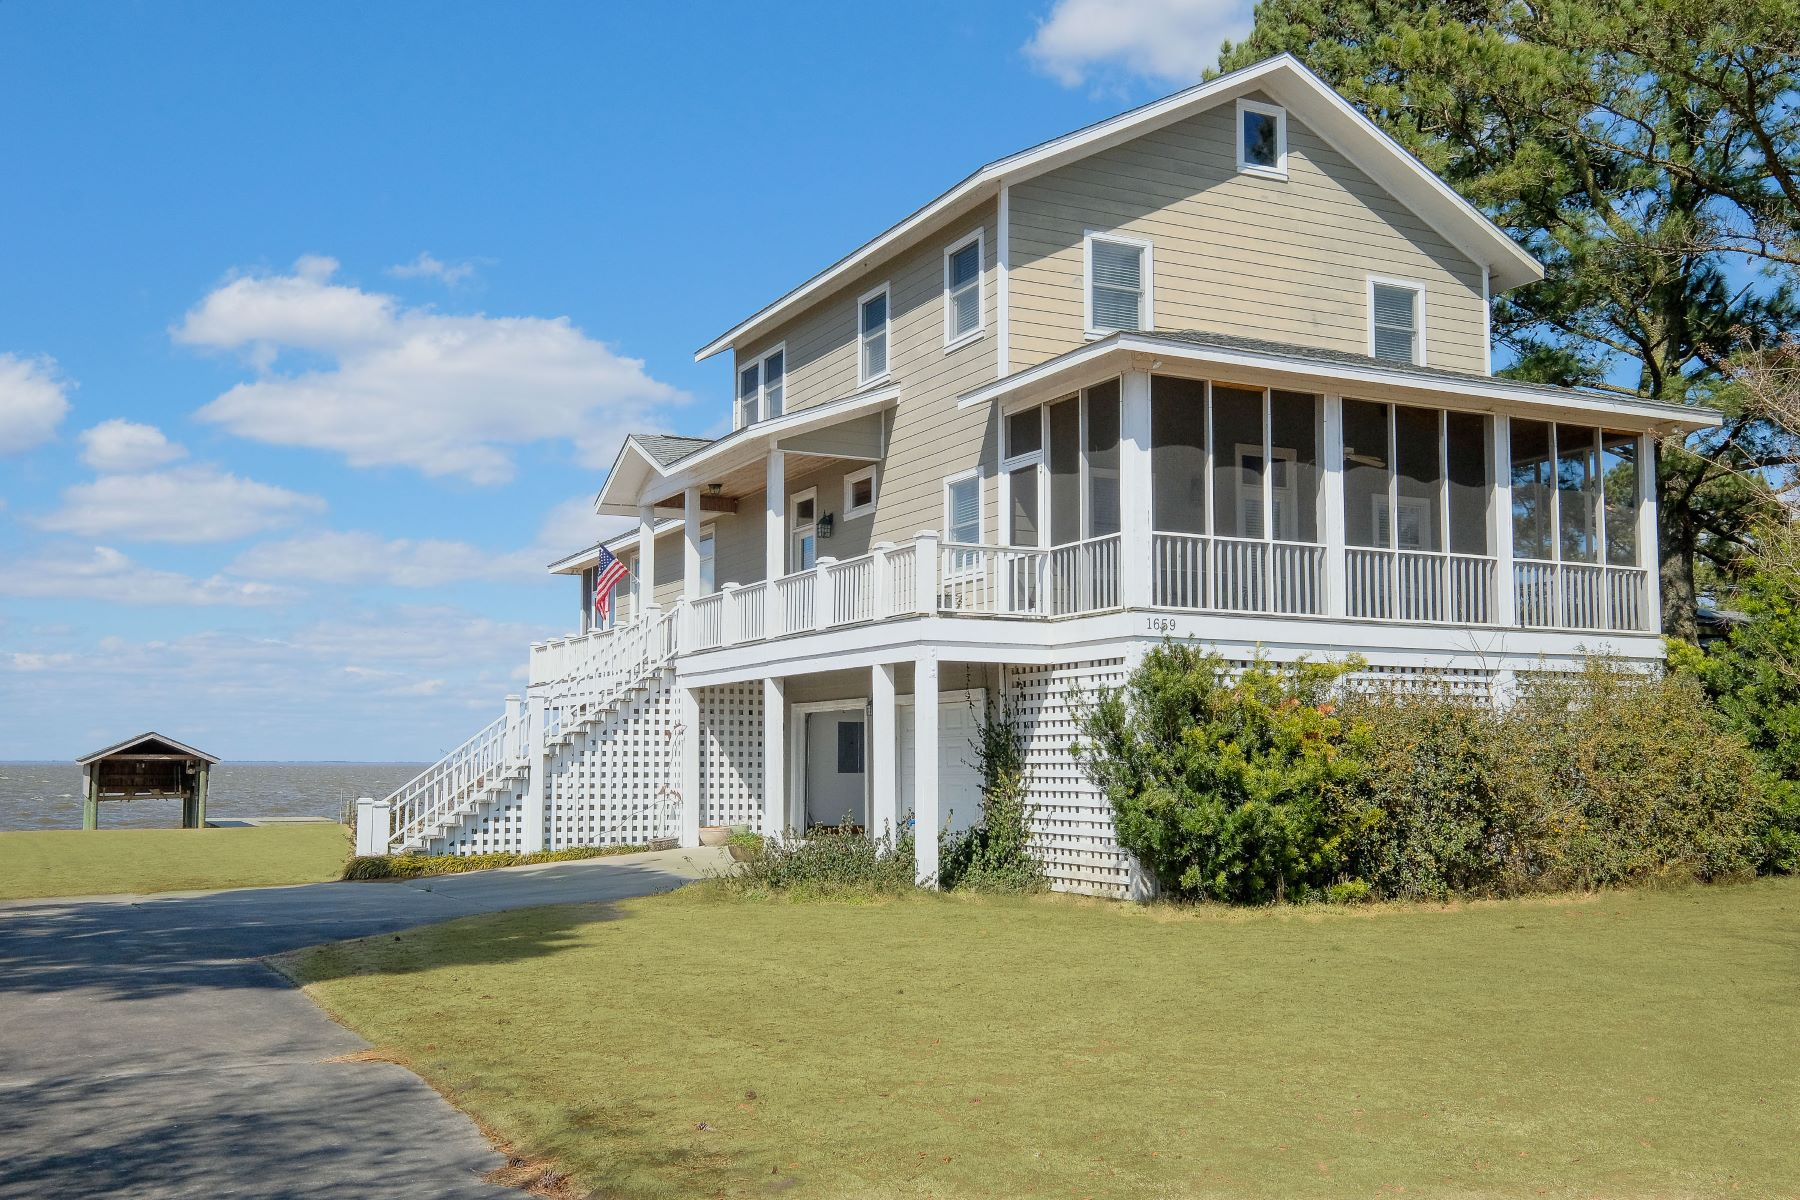 Single Family Homes for Sale at Classy Casual Waterfront 1659 Albemarle Beach Road Roper, North Carolina 27970 United States